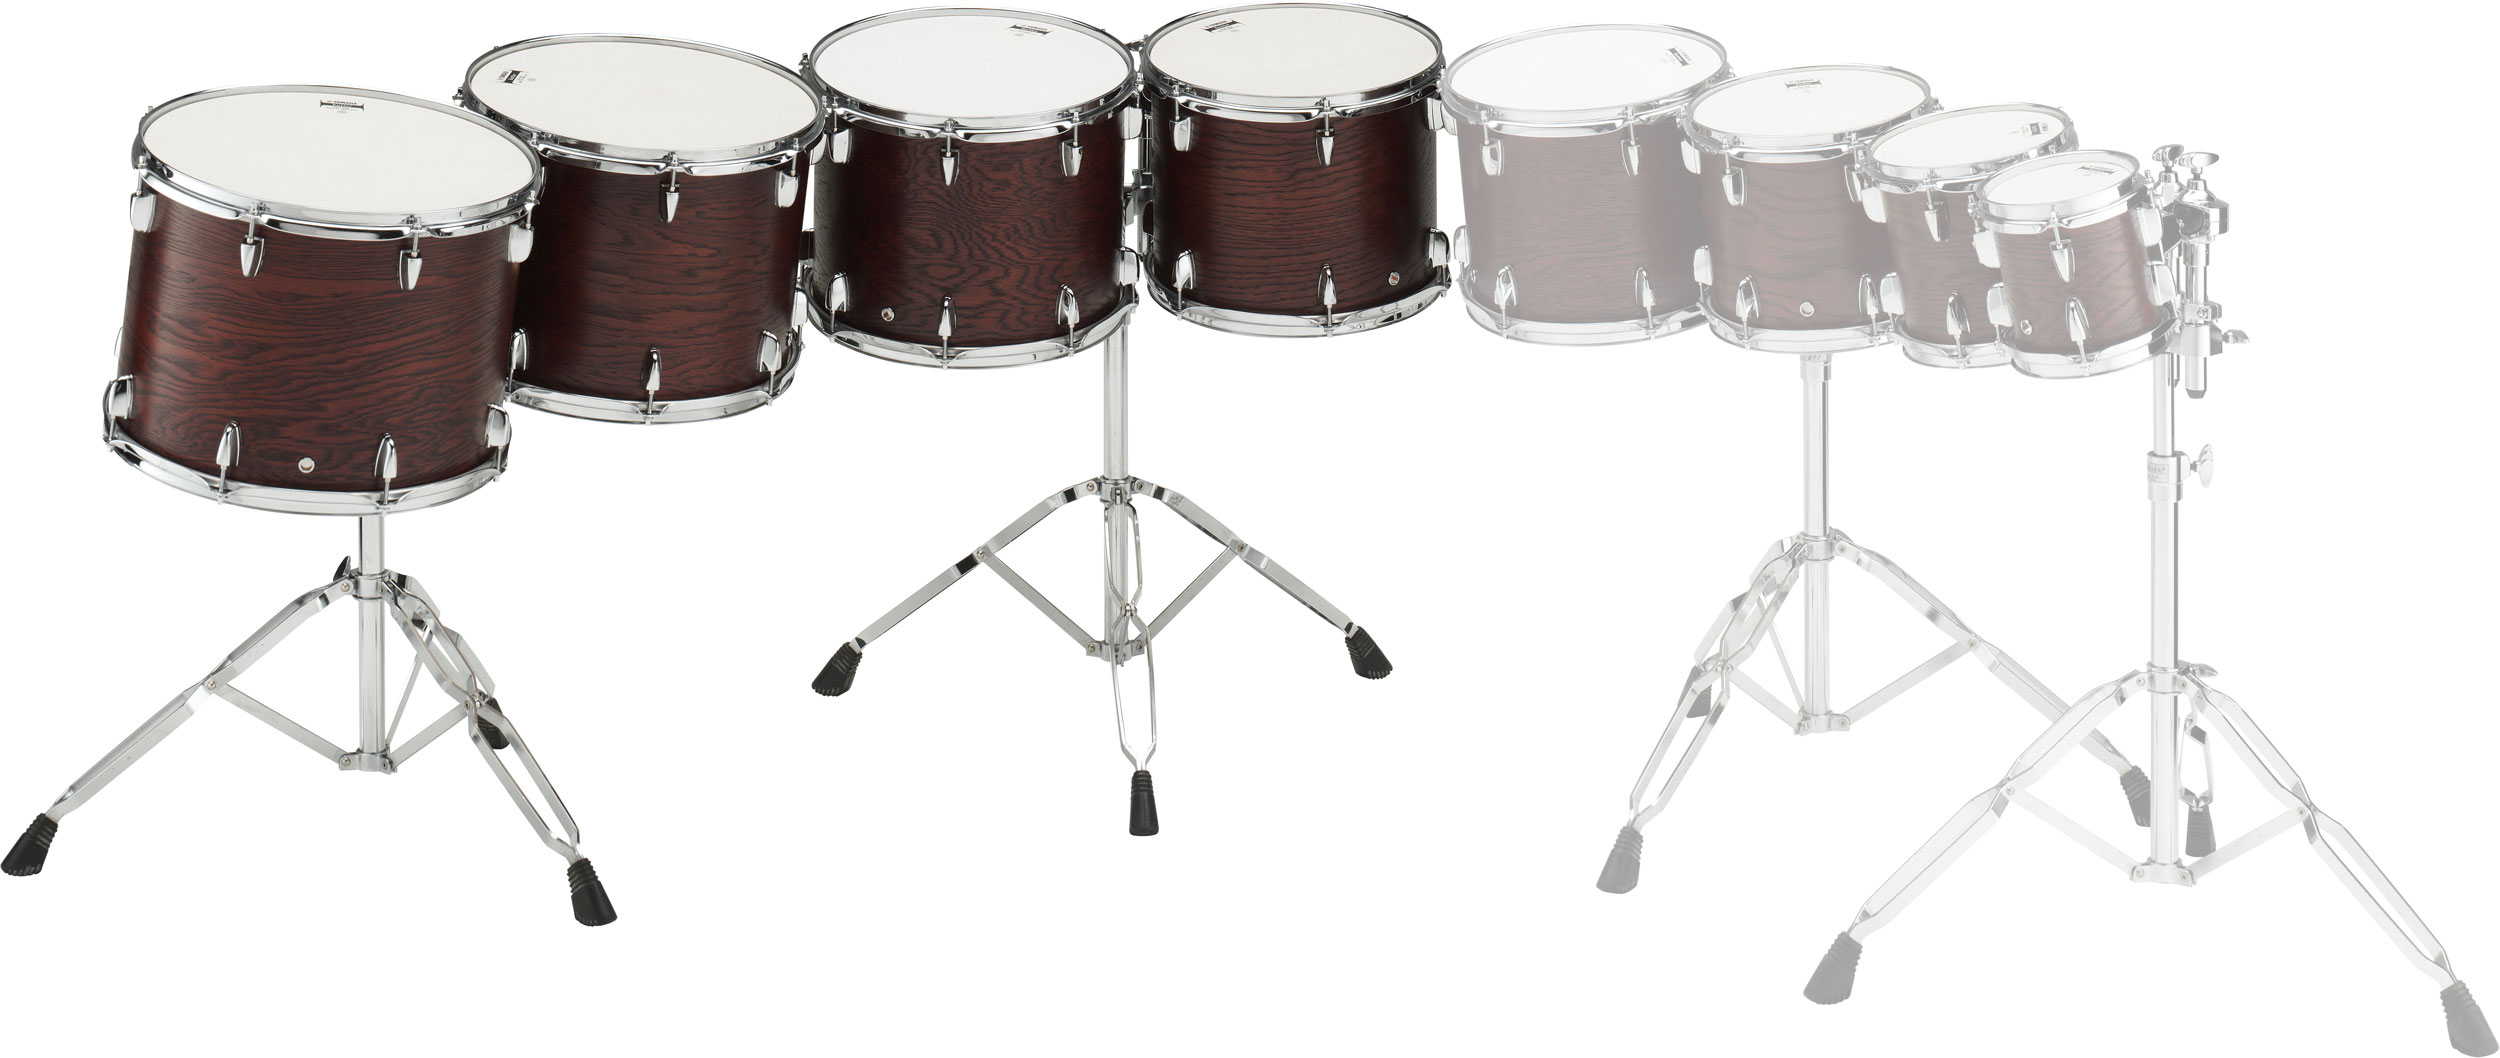 "Yamaha 10/12/13/14"" Grand Series Concert Tom Set with Stands"